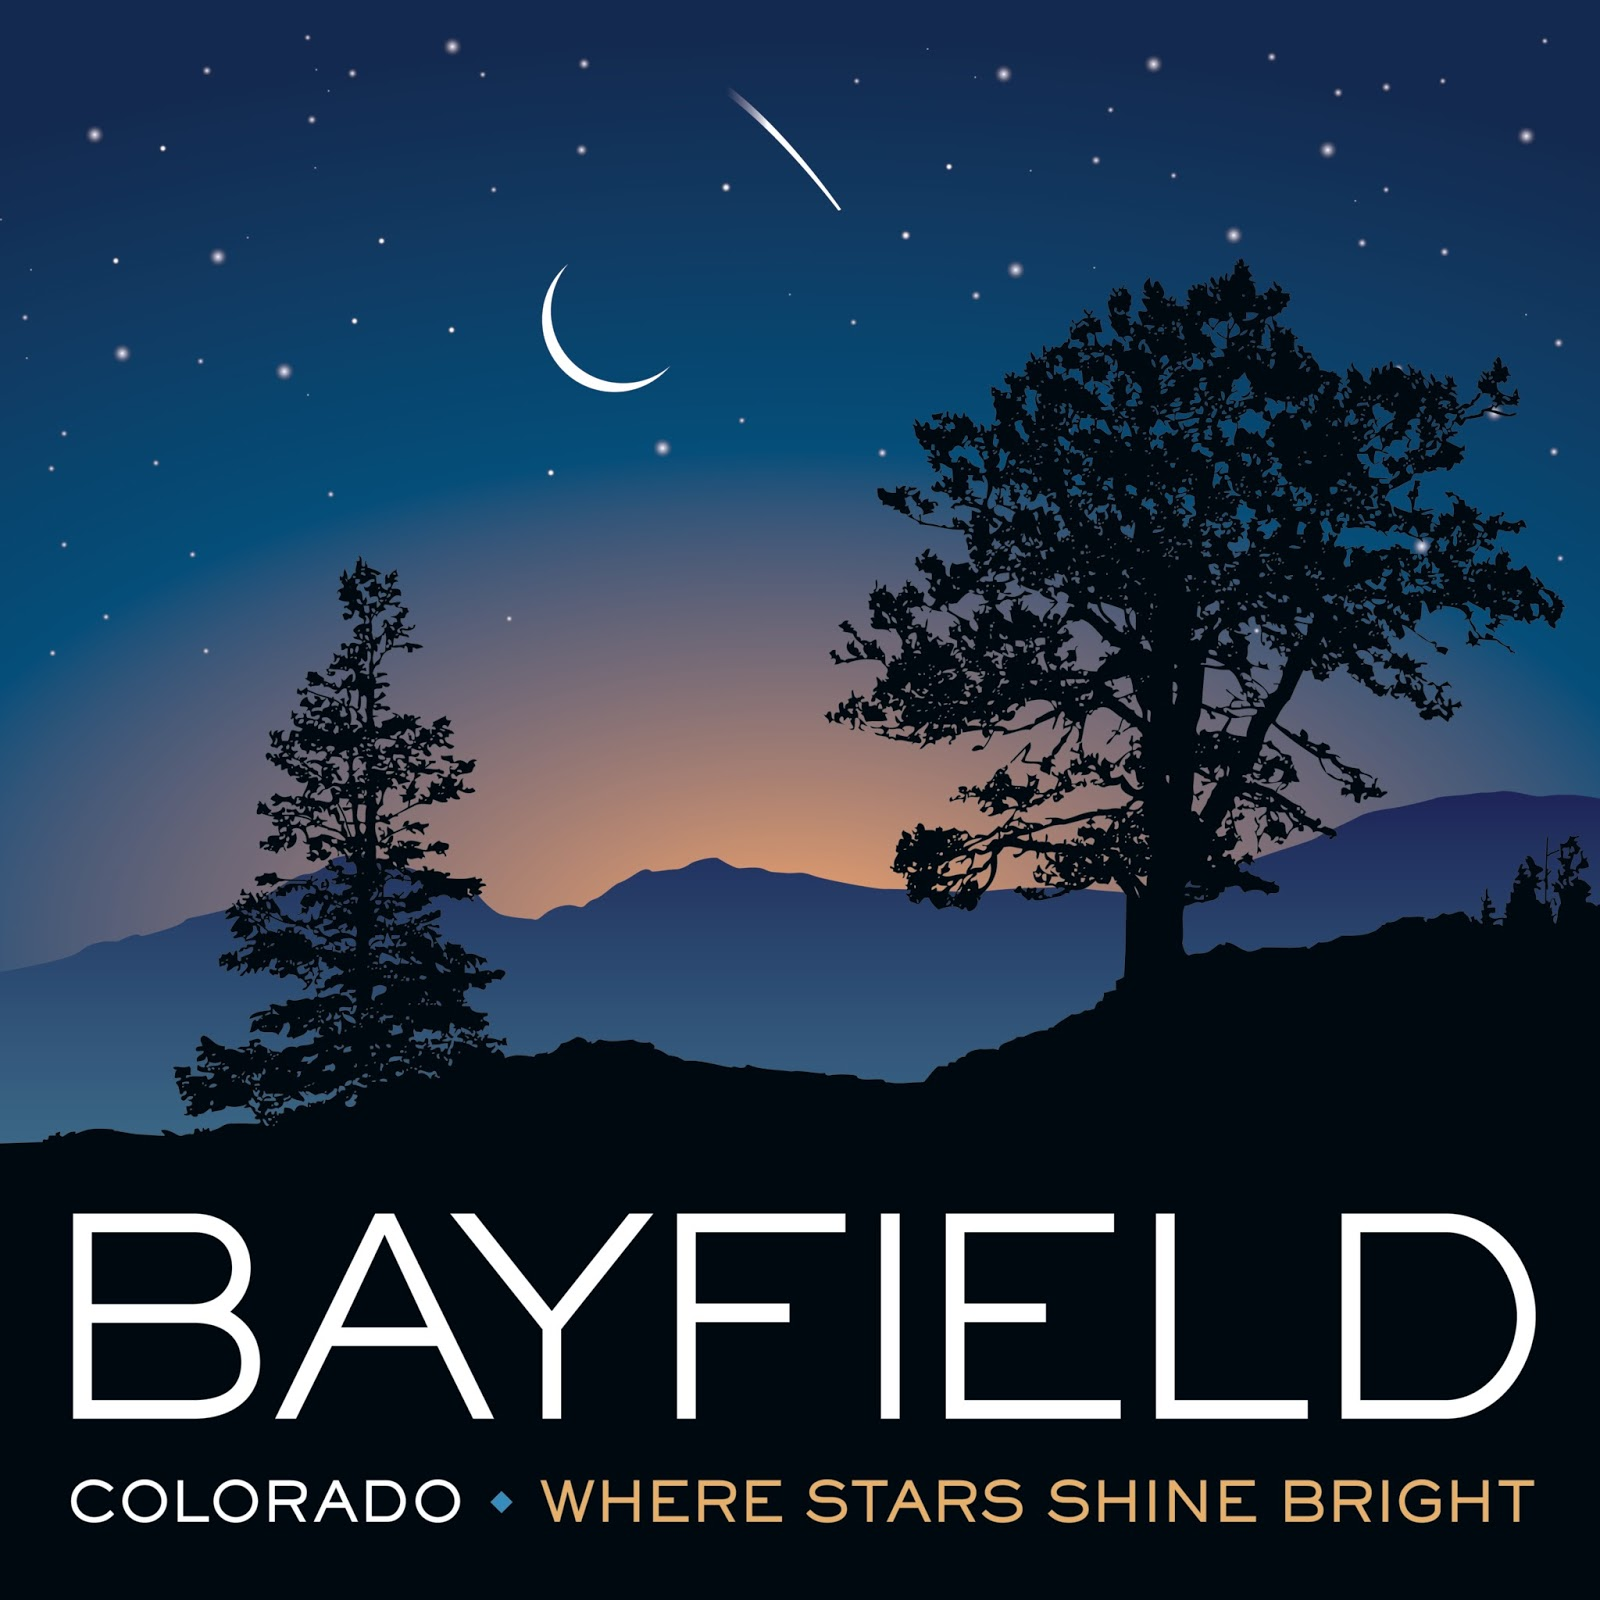 Bayfield Colorado Logo - Avant Marketing Community & Destination Branding Case Study